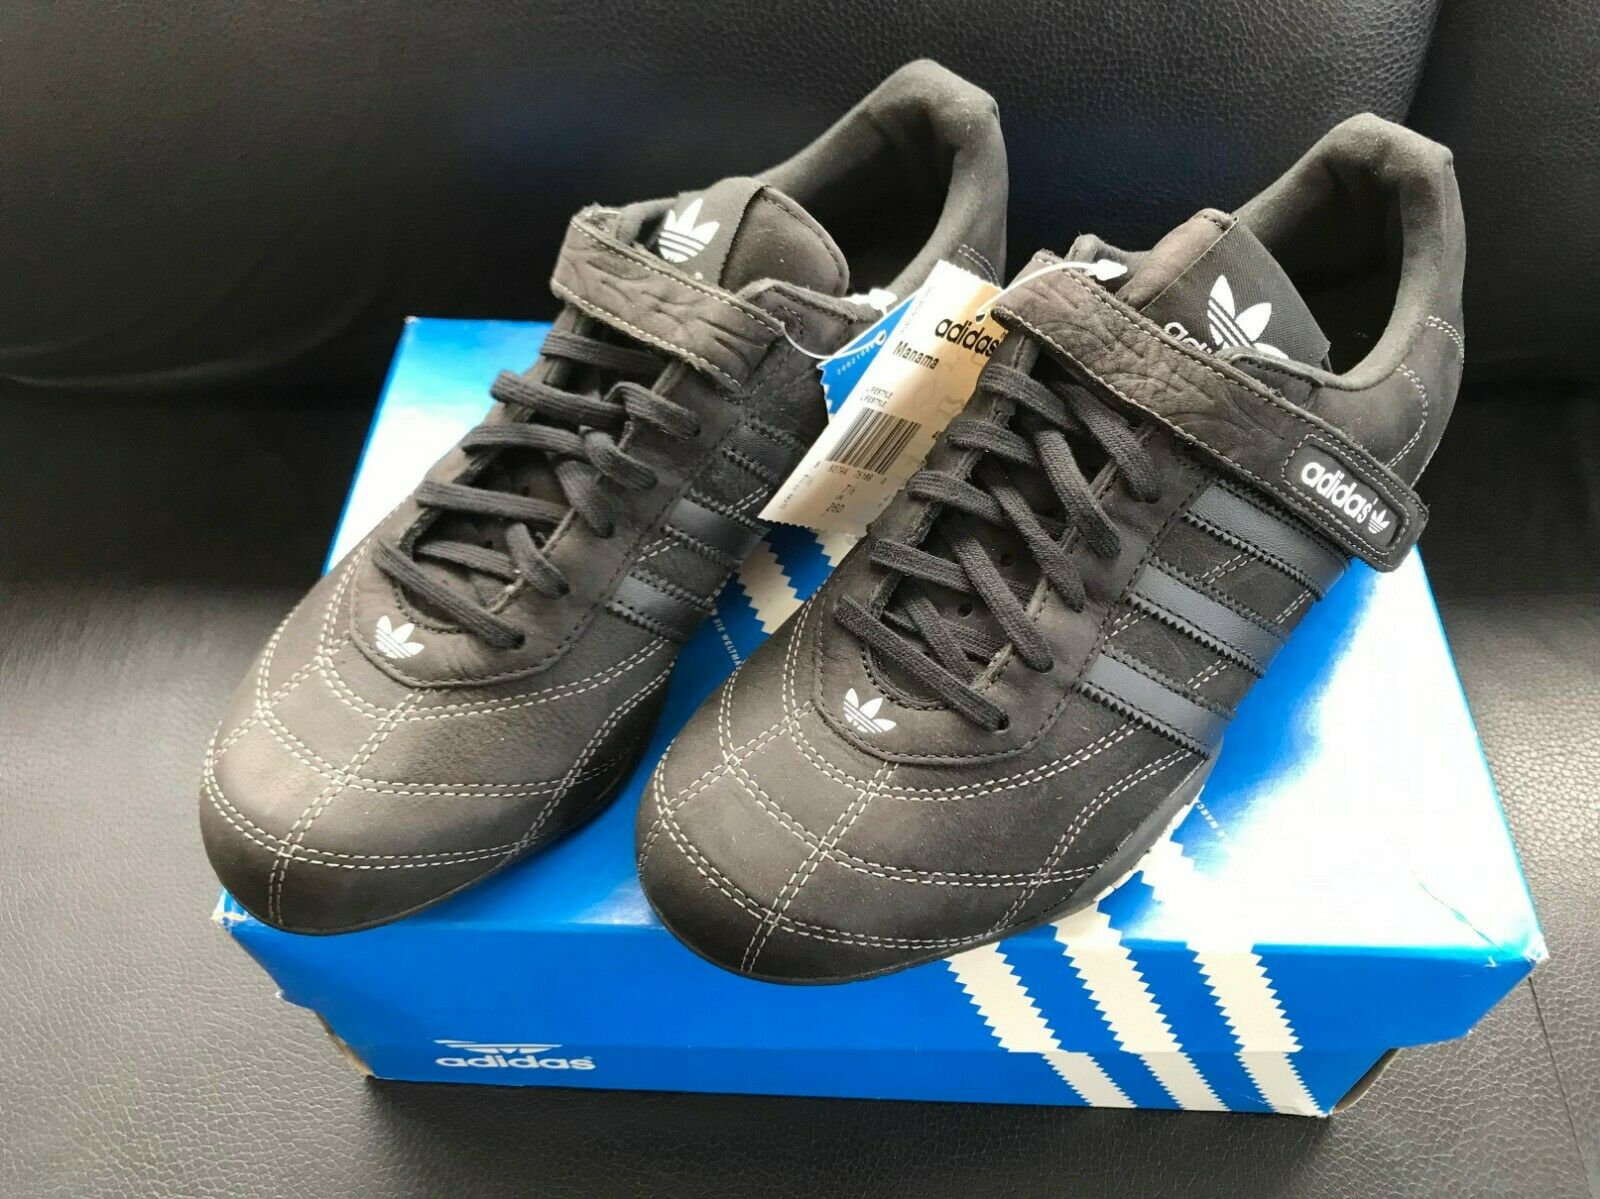 Adidas Goodyear Uomo adi Racer Driving Driving Driving Low Leather scarpe nero USA Dimensione 8 & 10 2da0db